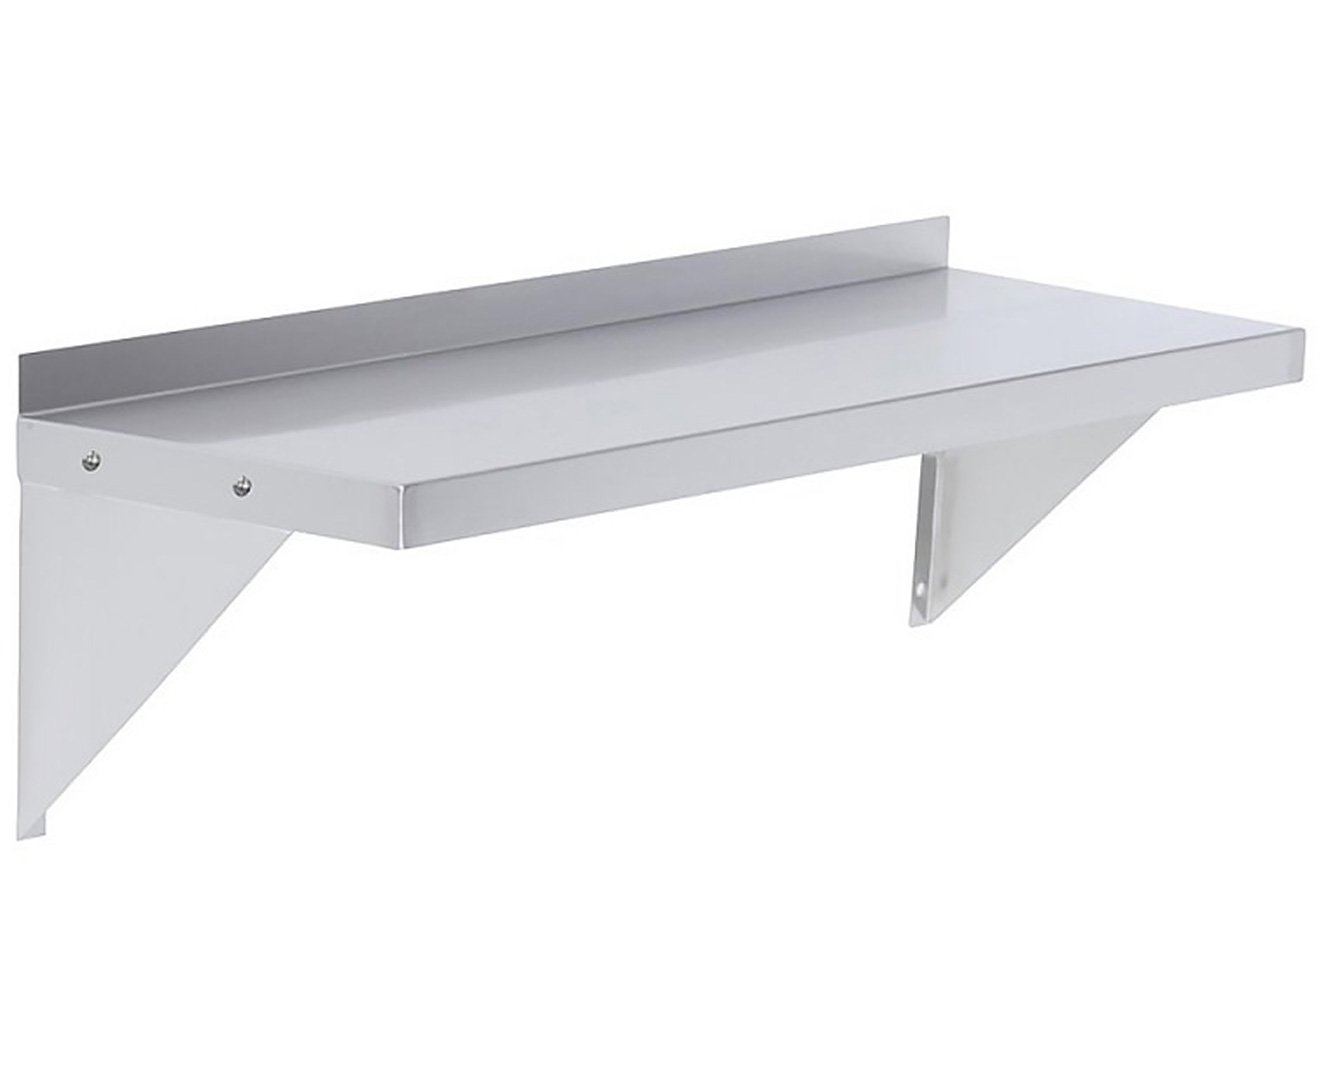 610x356mm Stainless Wall Mounted Shelf - $206.3